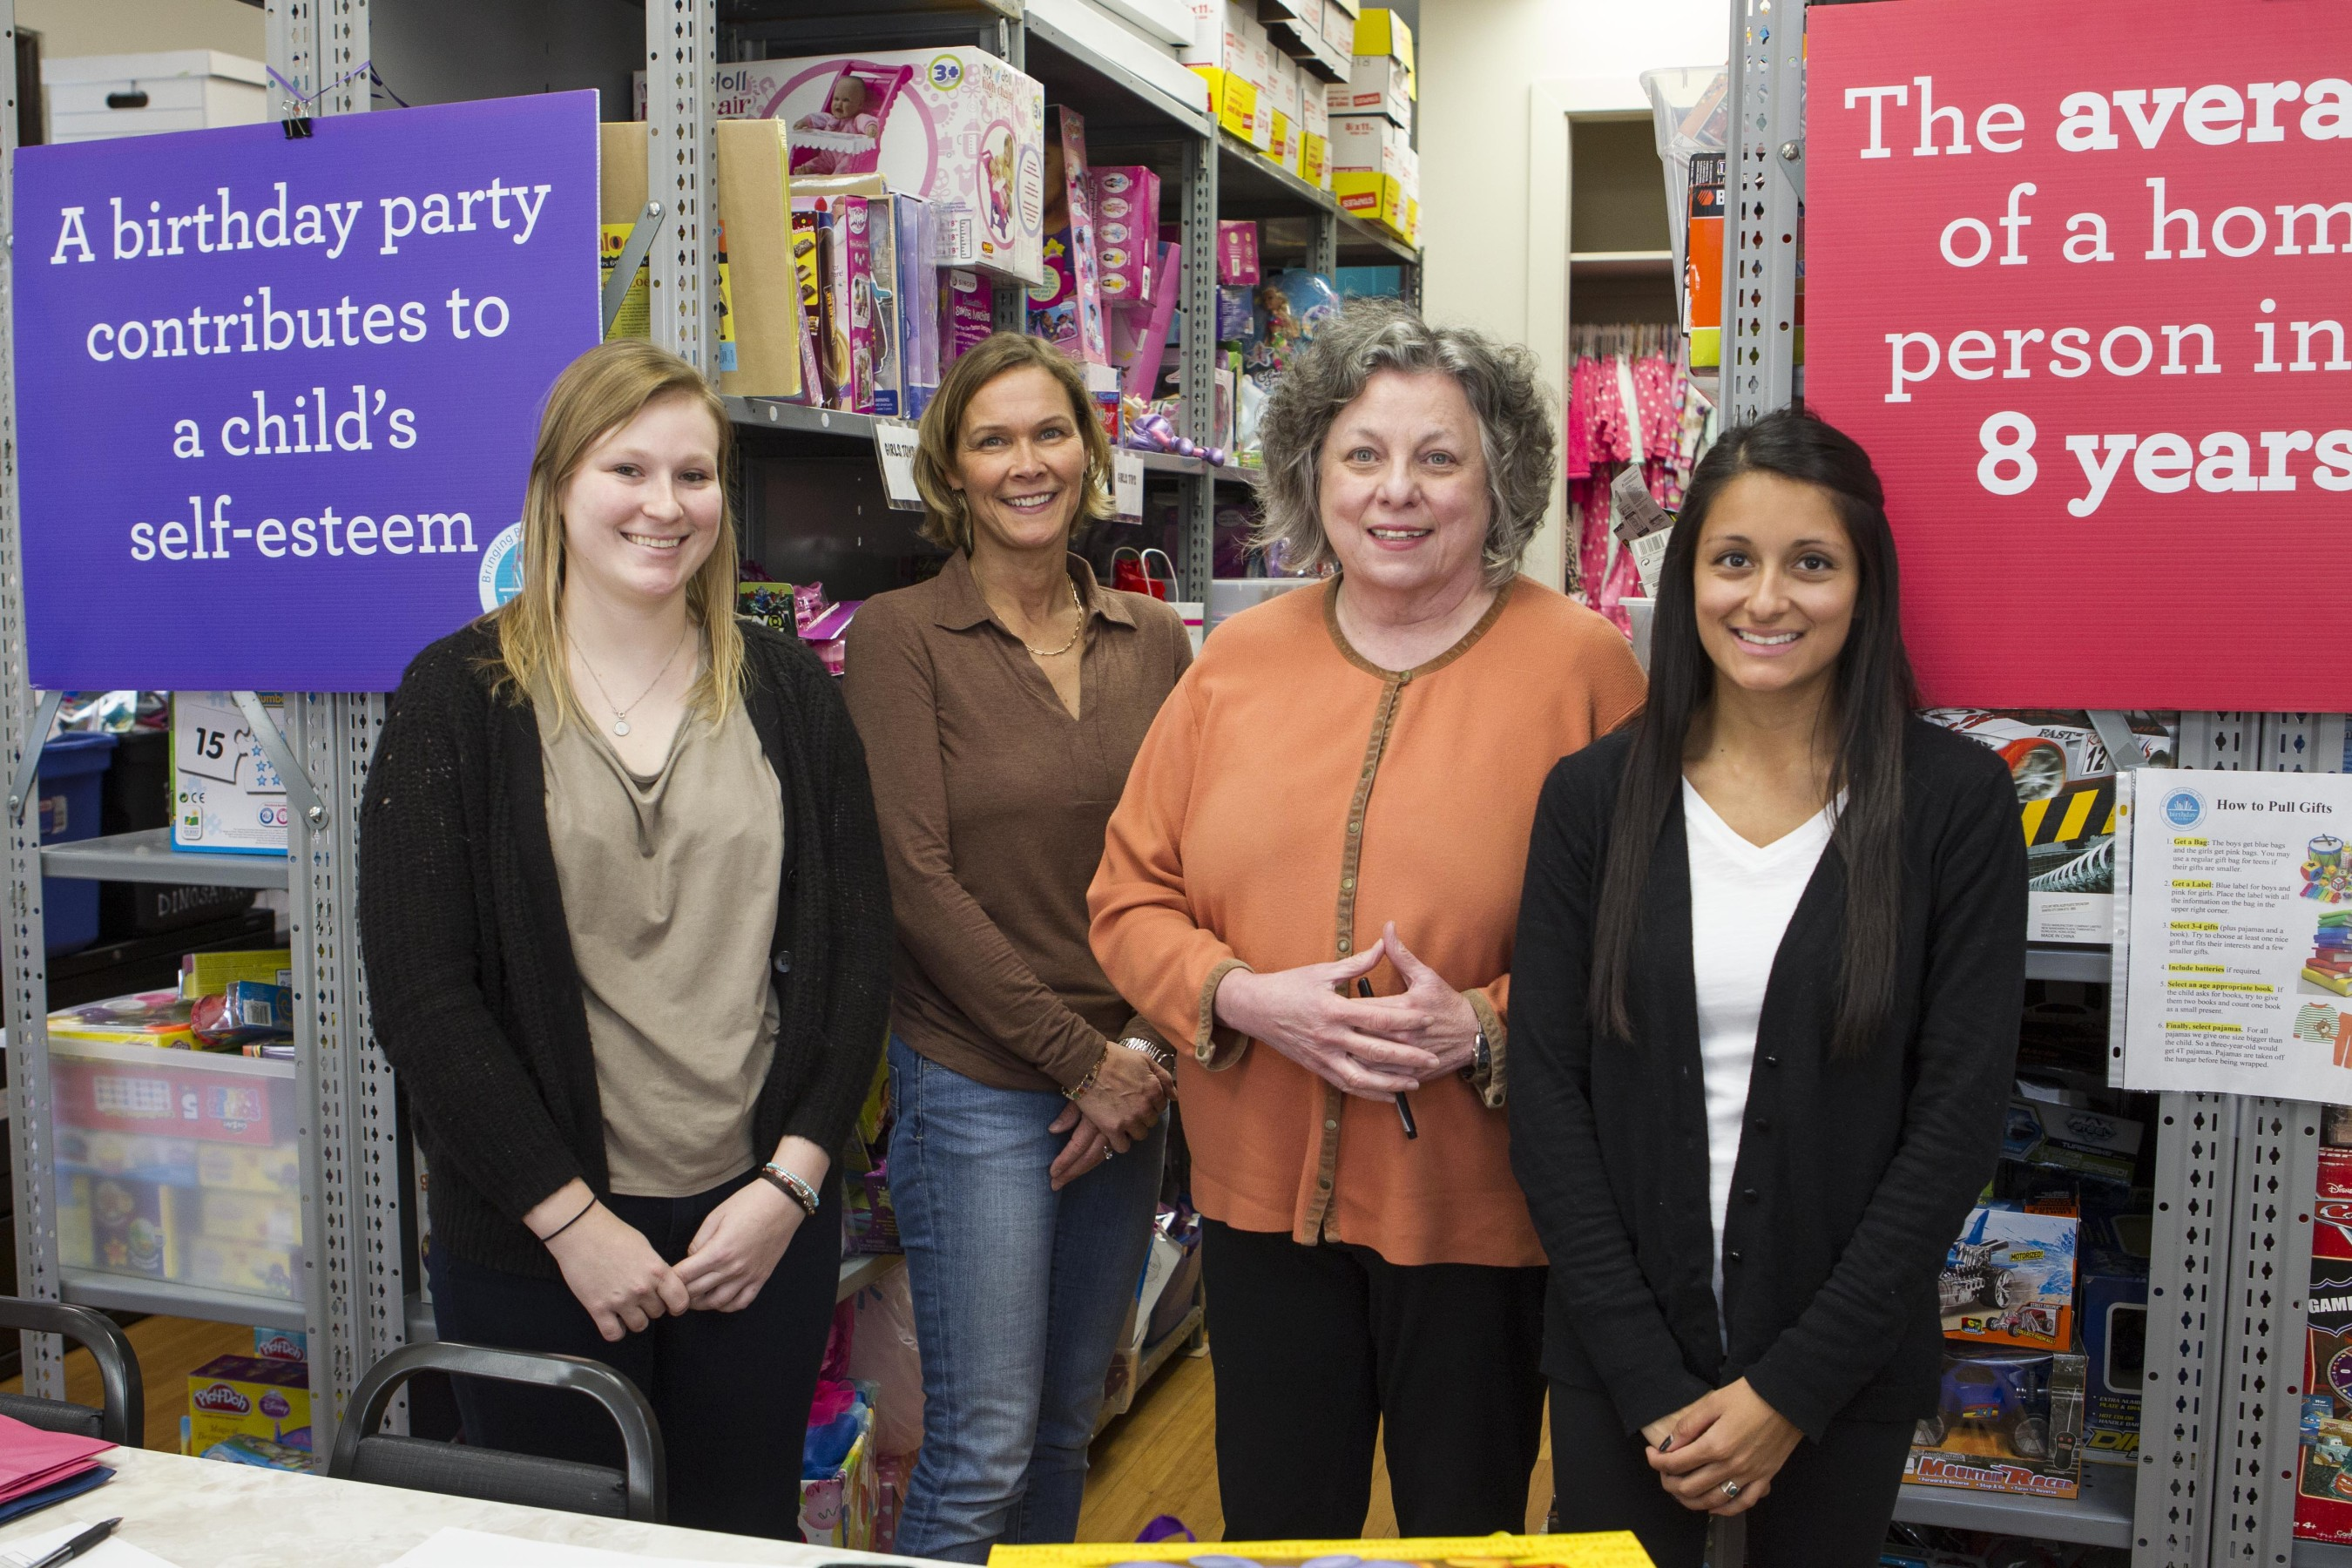 Heather Coen, intern, from left, Lisa Vasiloff, Cofounder & Executive Director, Susan Haviland, Associate Director, and Sarah Hennessy, Greater Boston Program Coordinator, pose for a picture at the Birthday Wishes' main office in Newton, Massachusetts on Wednesday November 18, 2015. Birthday Wishes is a NGO that organizes birthday parties for homeless children in Massachusetts, Rhode Island and Long Island, New York.